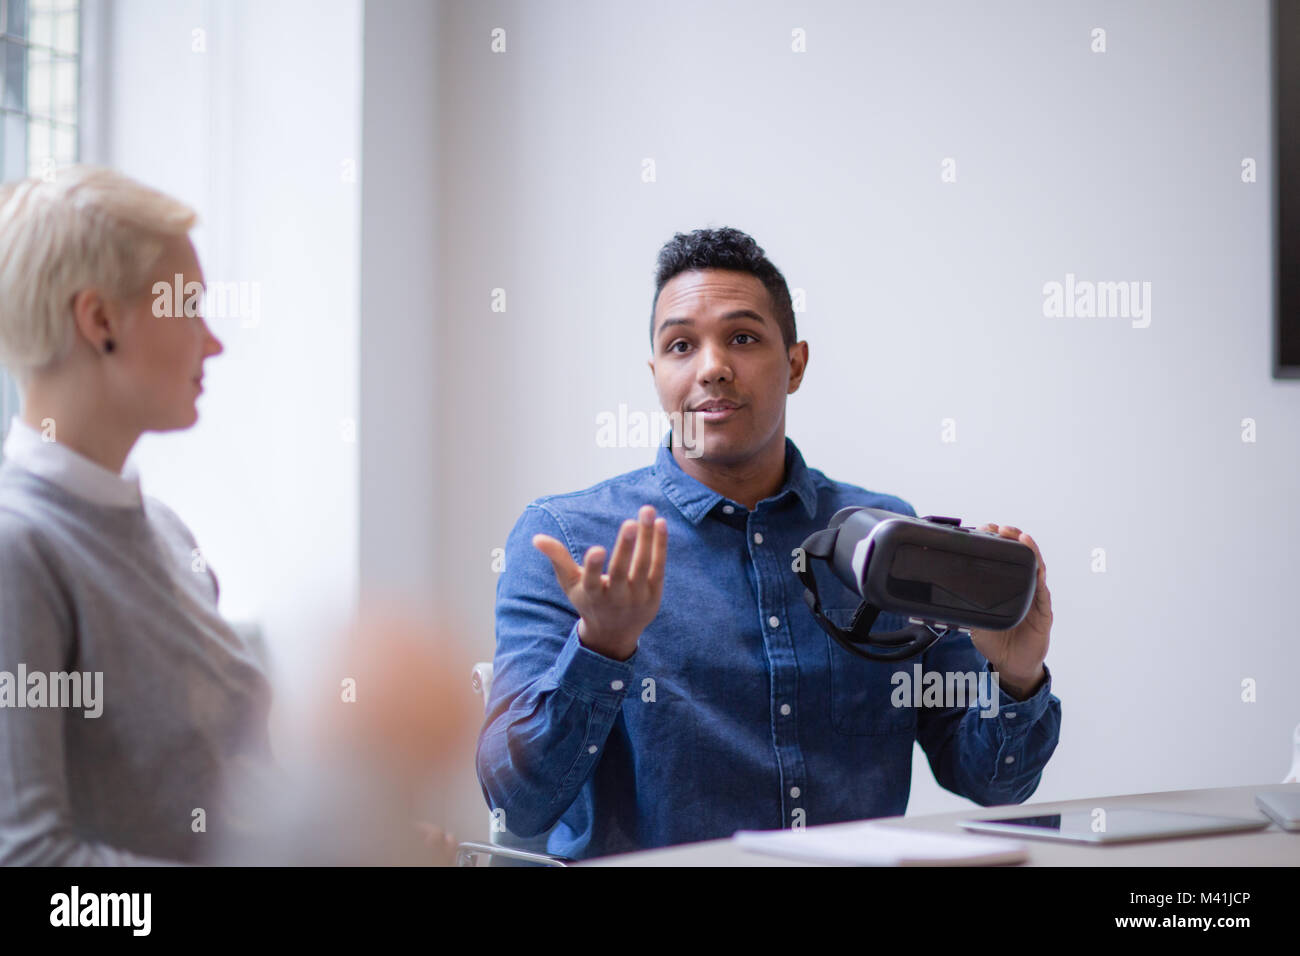 Designer presenting virtual reality headset in a meeting - Stock Image